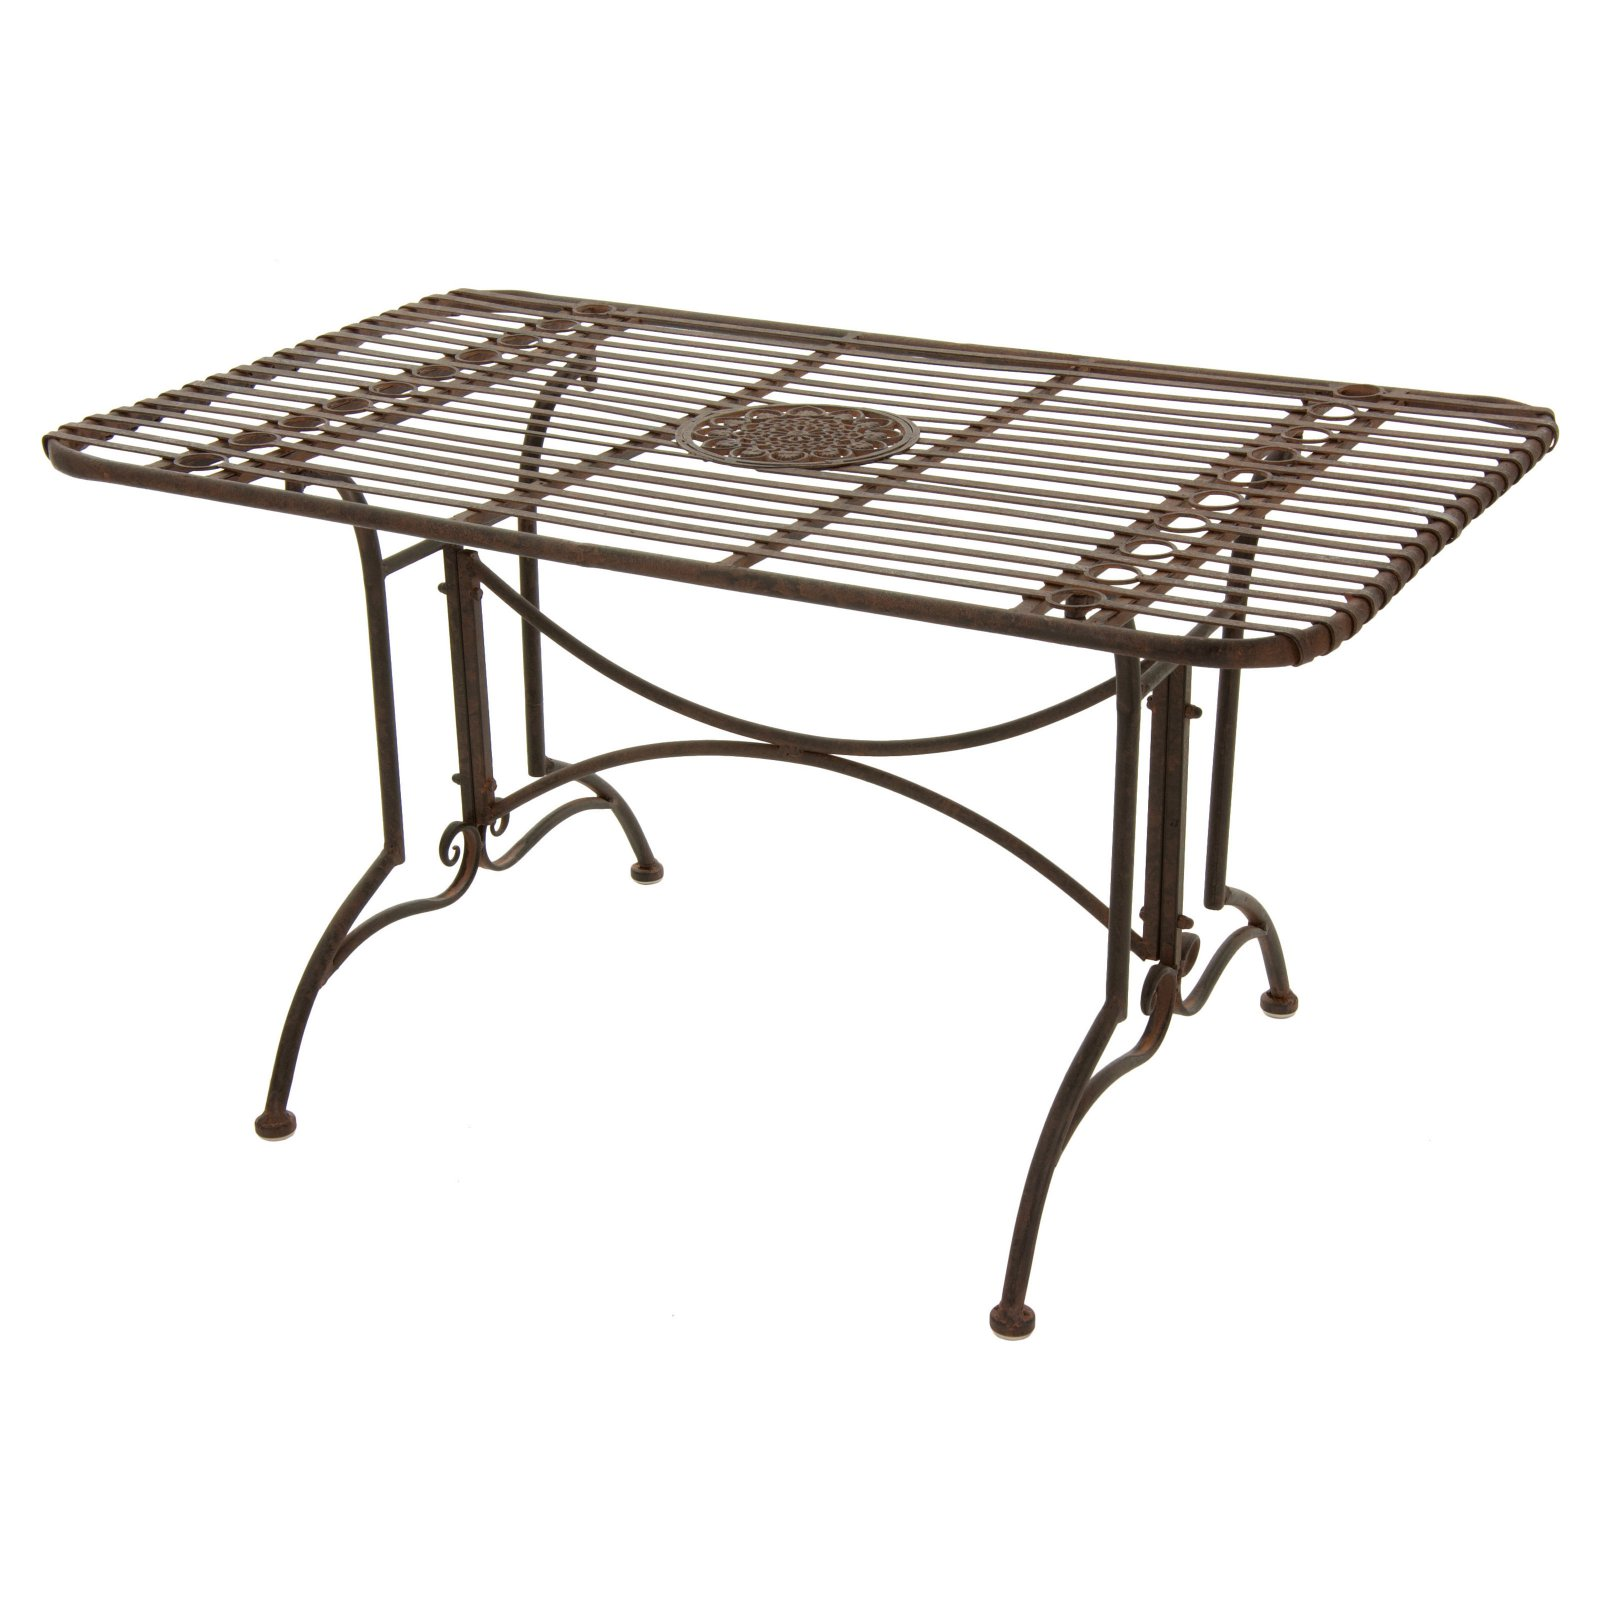 Oriental Furniture Rustic Wrought Iron Rectangular Patio Dining Table